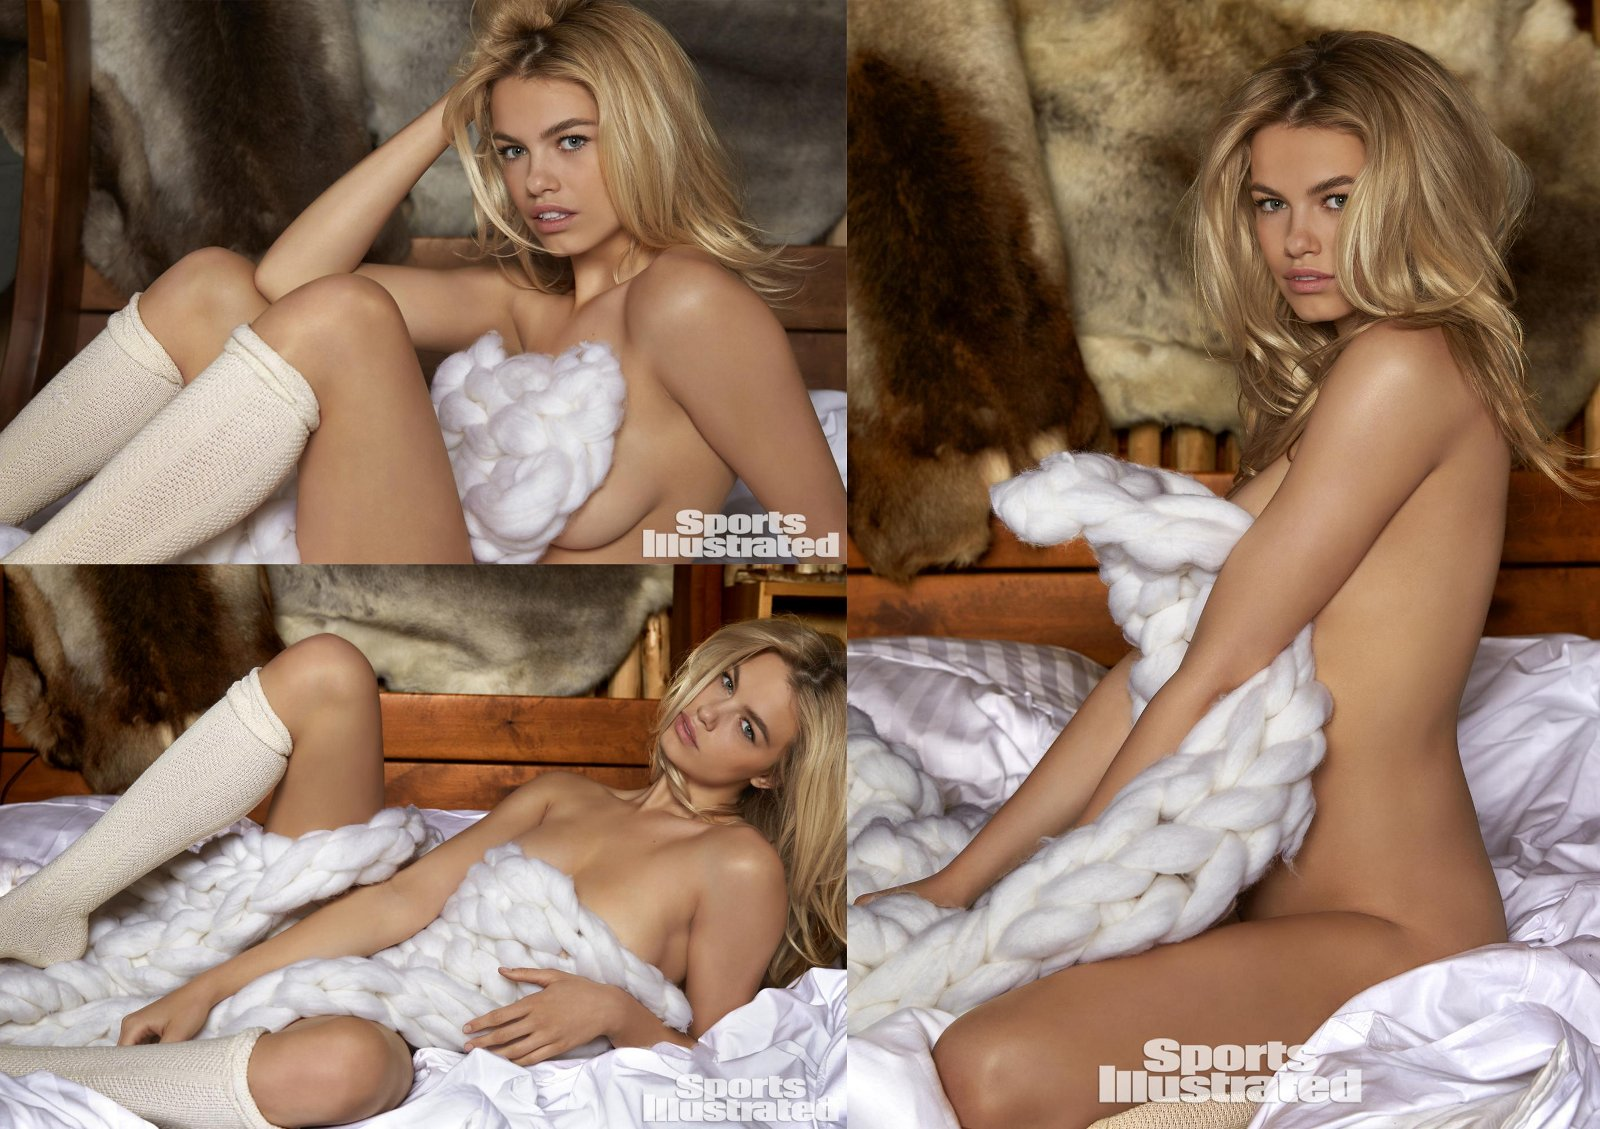 Sports Illustrated 2017 Swimsuit Model - Hailey Clauson